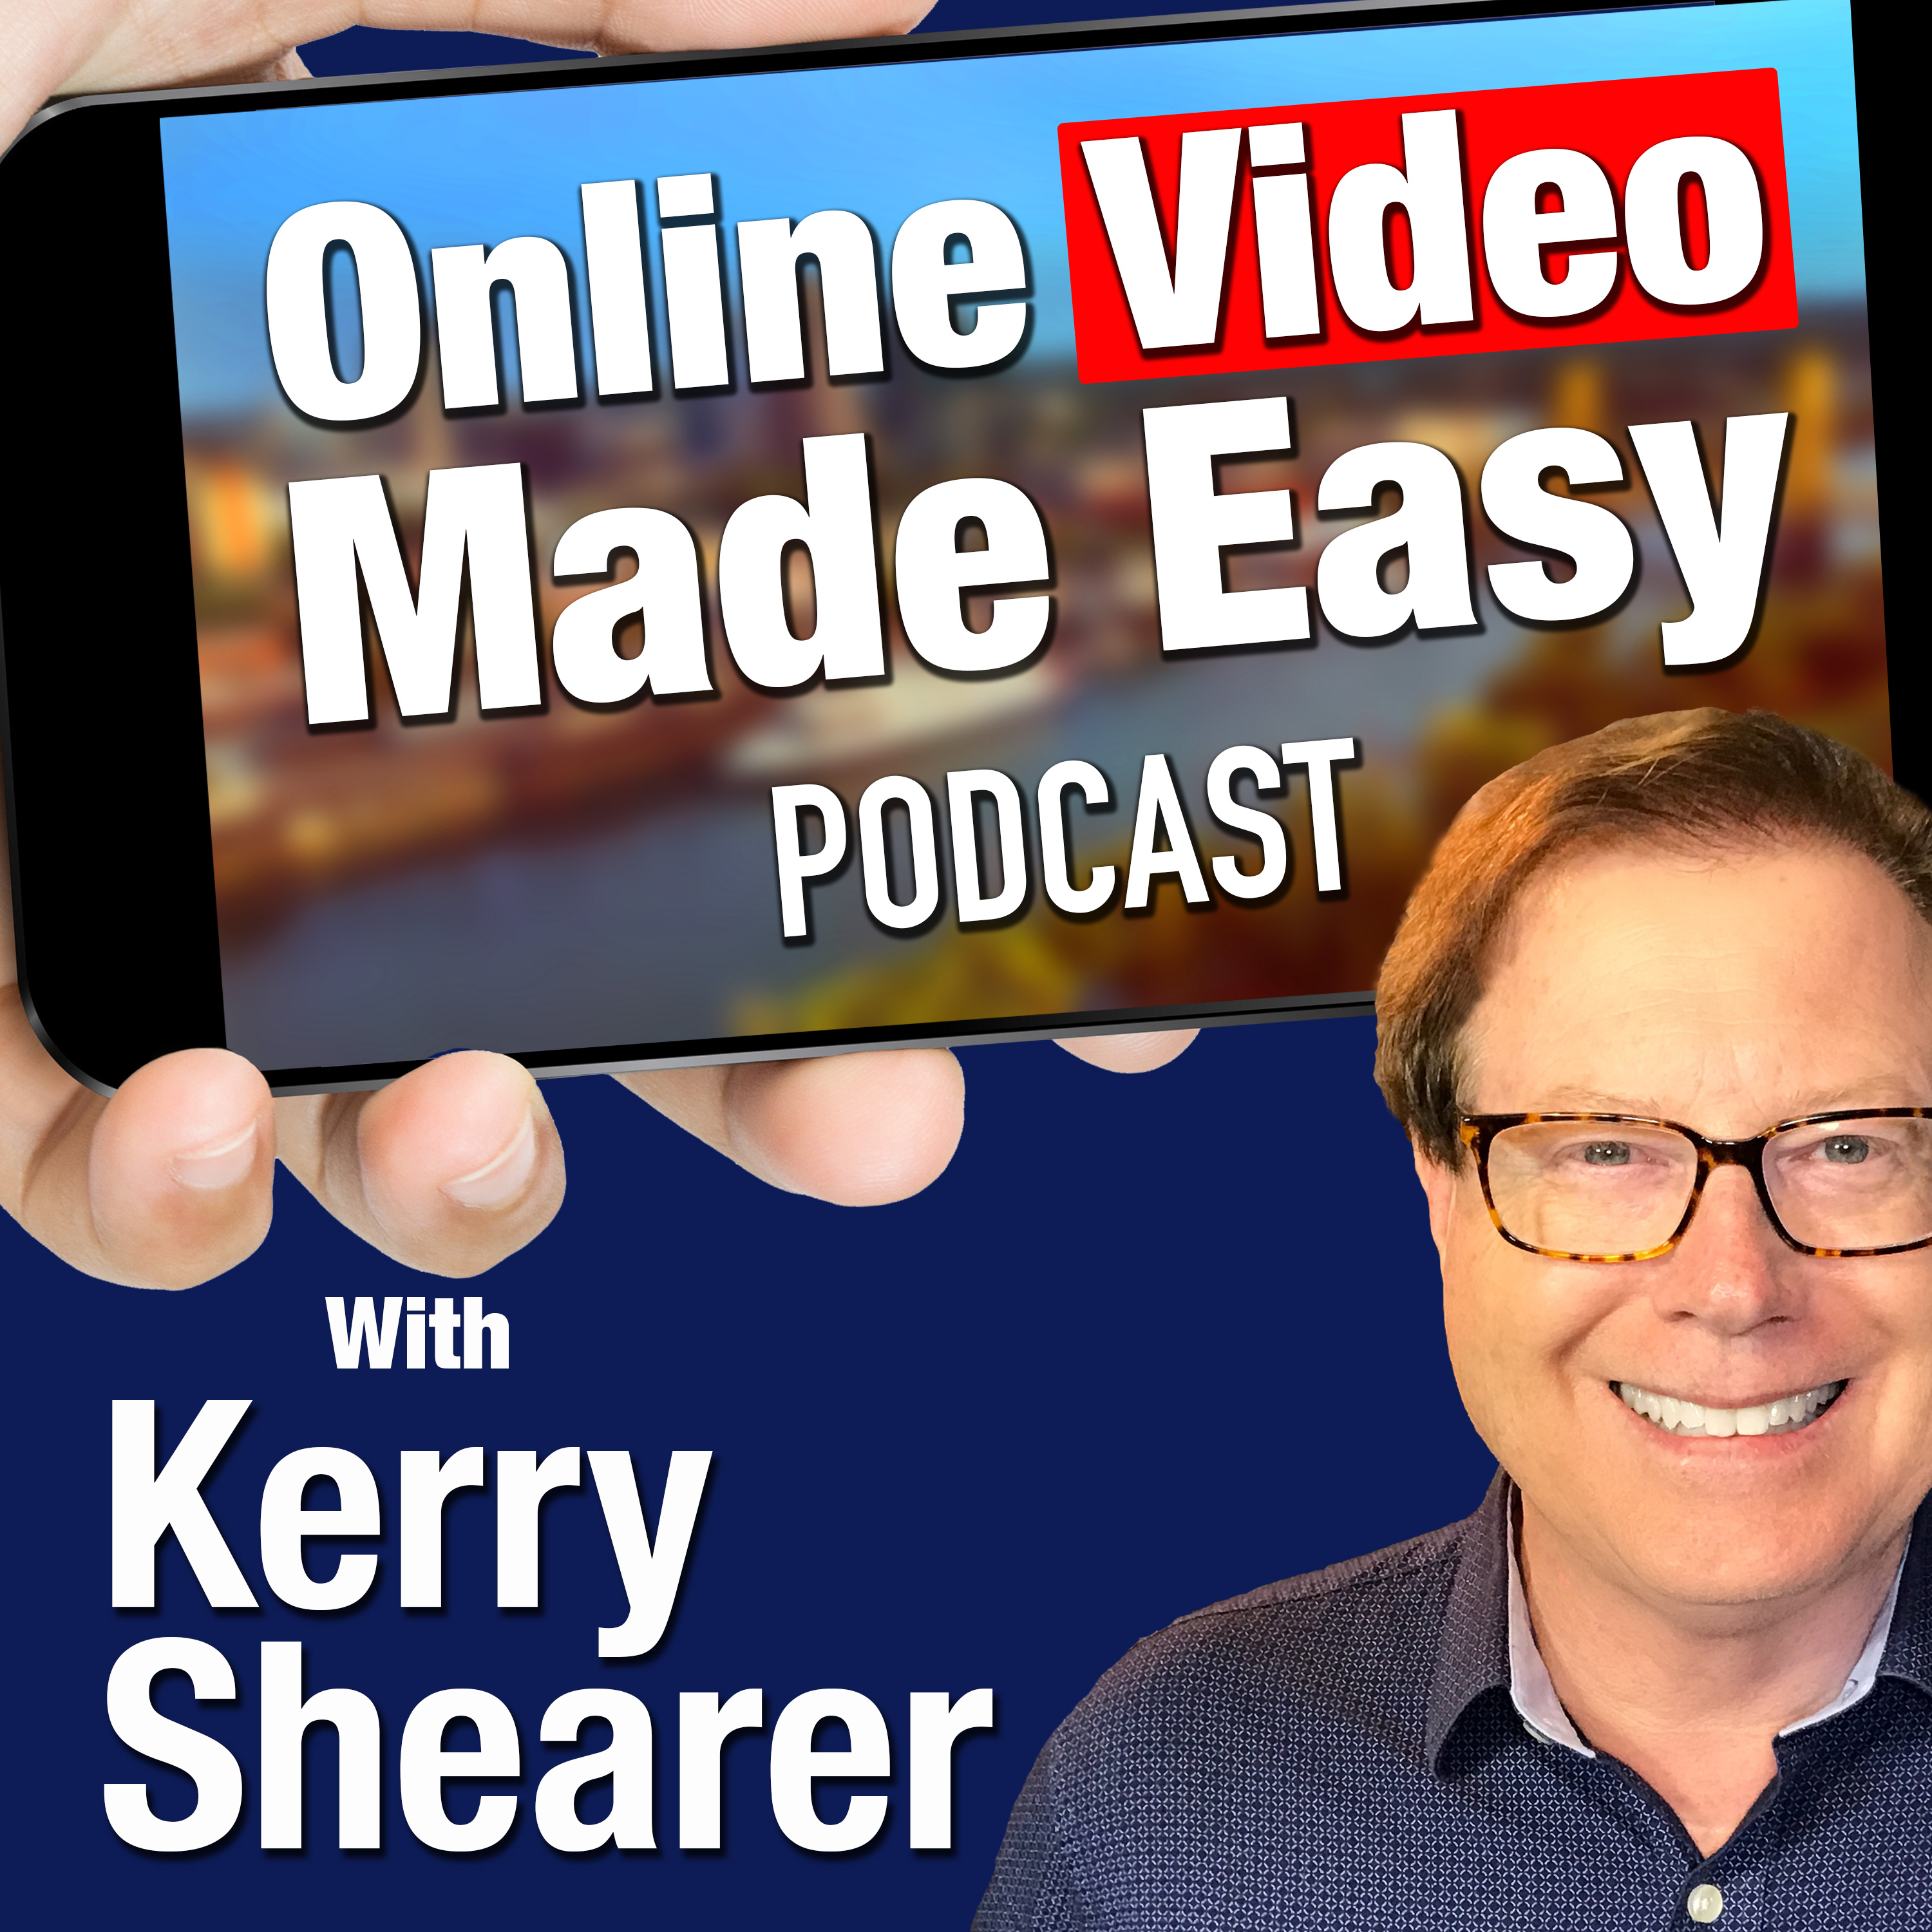 Online Video Made Easy